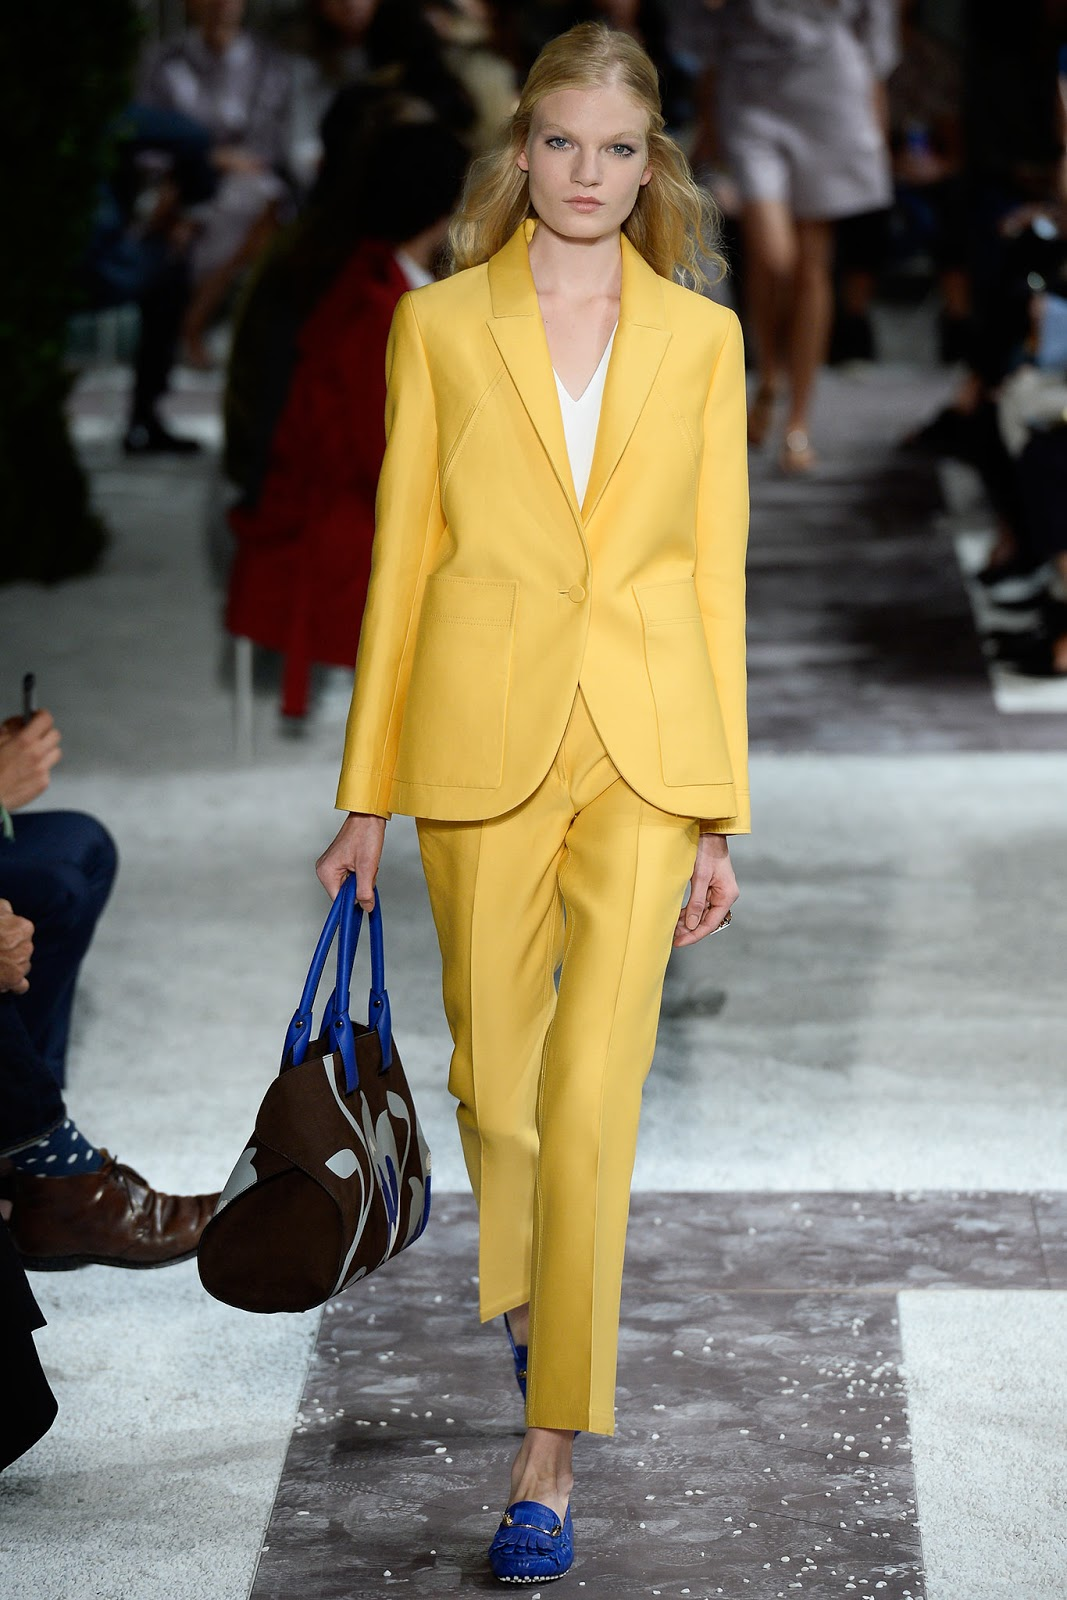 Tod's / Spring/Summer 2015 trends / trouser suit / styling tips and outfit inspiration / via fashioned by love british fashion blog